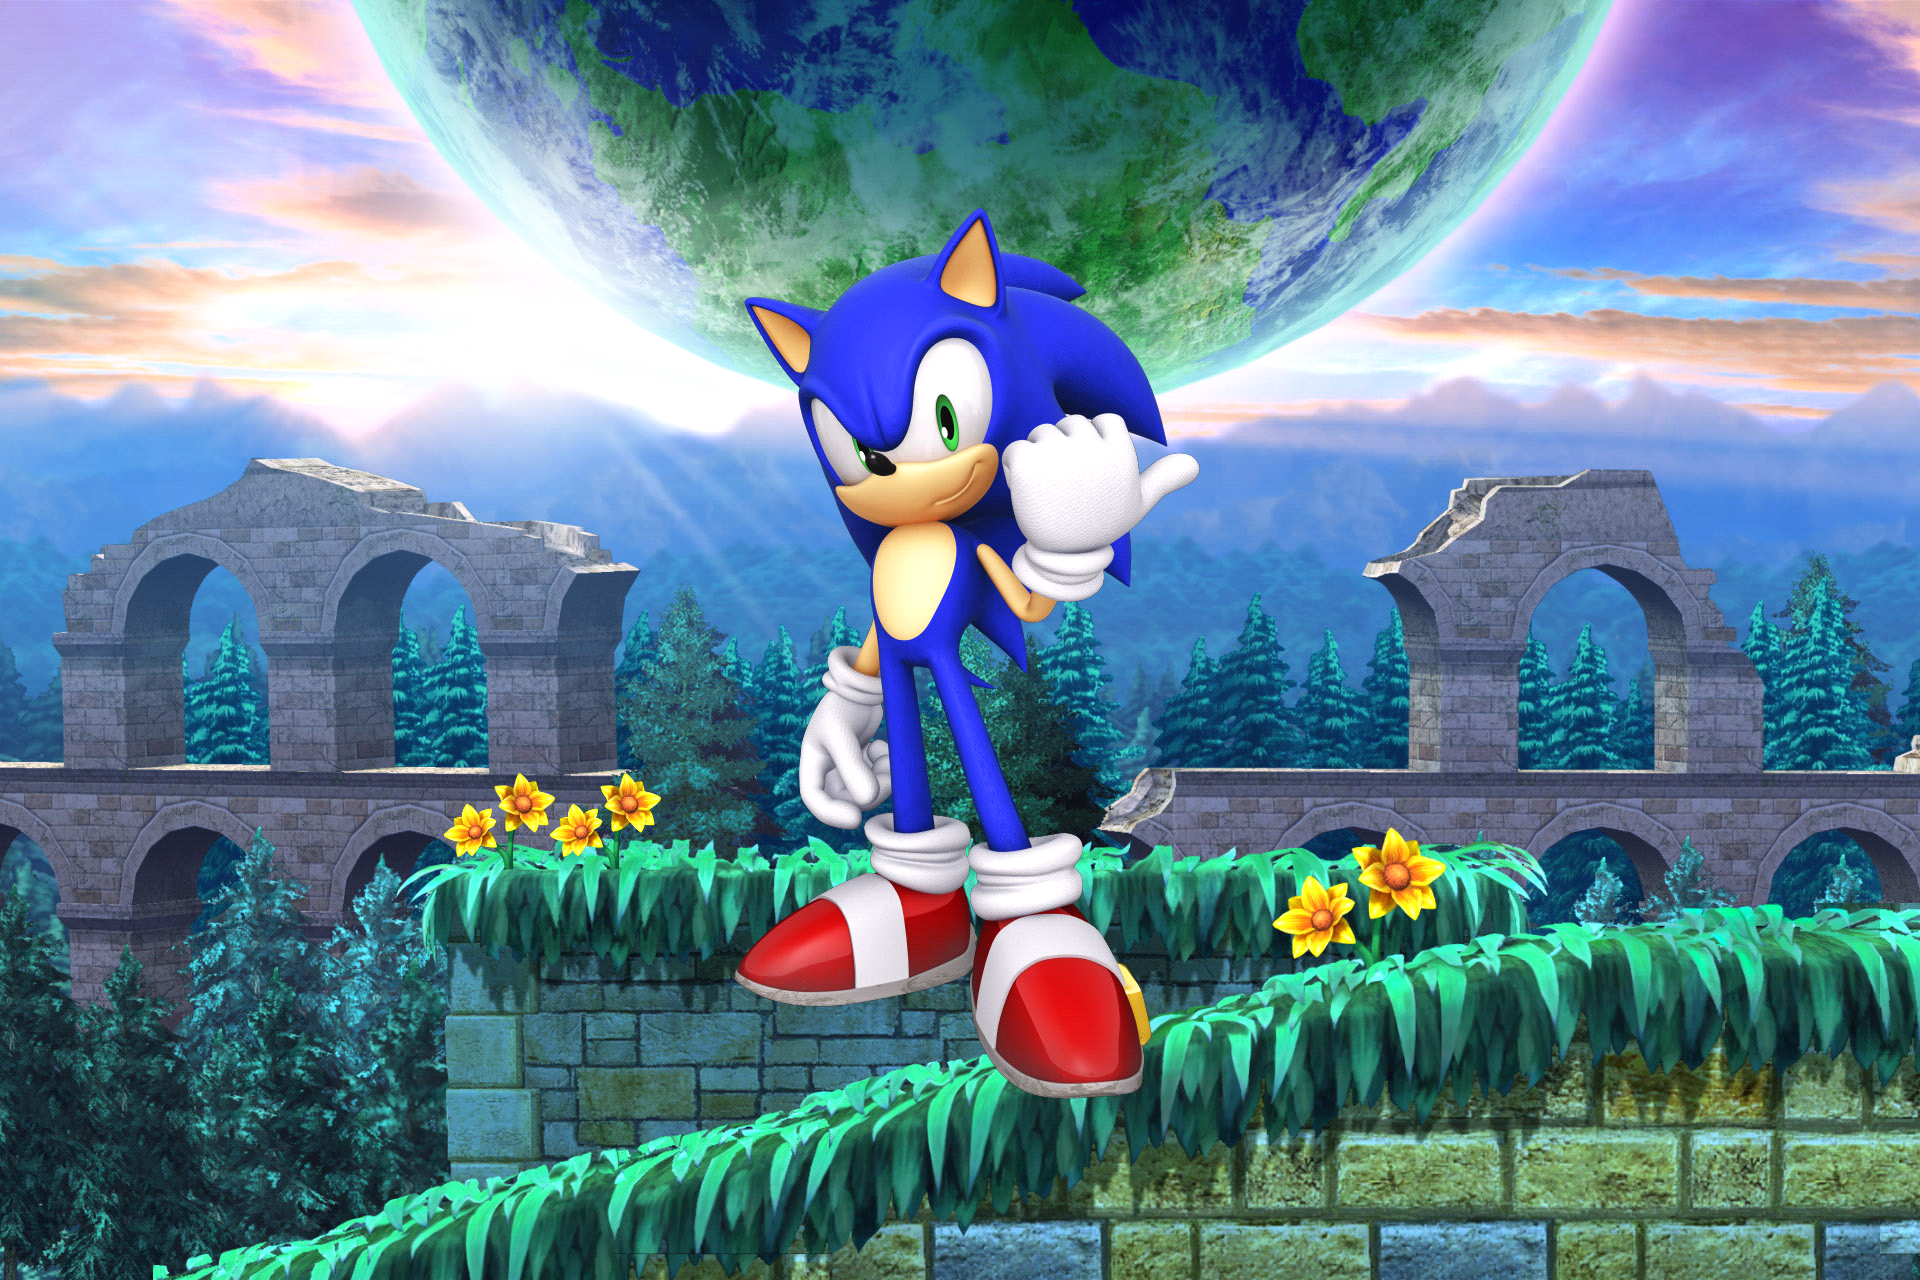 sonic the hedgehog sonic the hedgehog 4 episode ii gallery sonic scanf. Black Bedroom Furniture Sets. Home Design Ideas